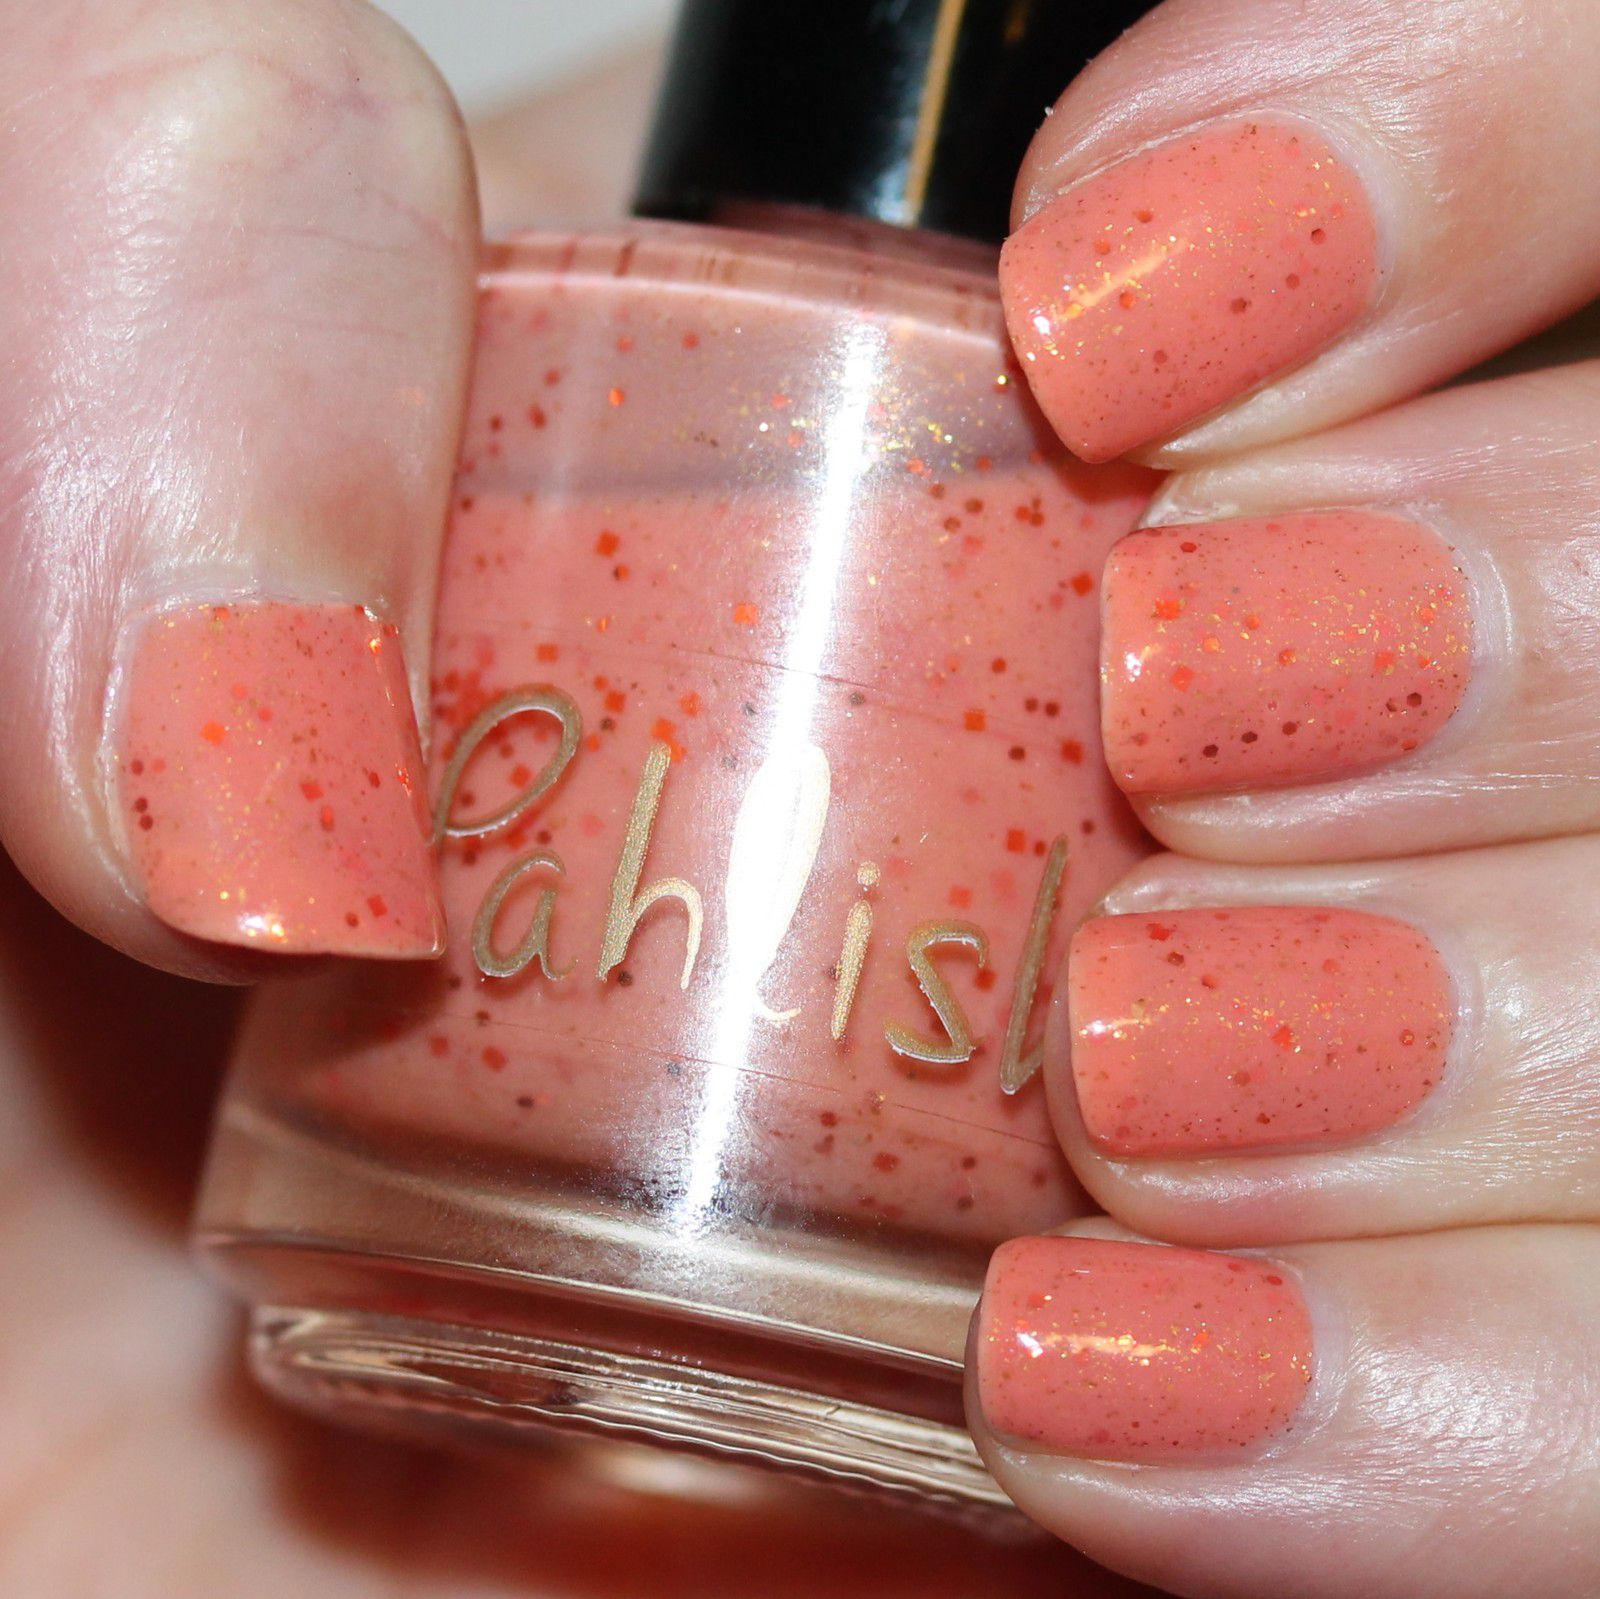 Essie Protein Base Coat / Pahlish His Favorite Sundress / HK Girl Top Coat